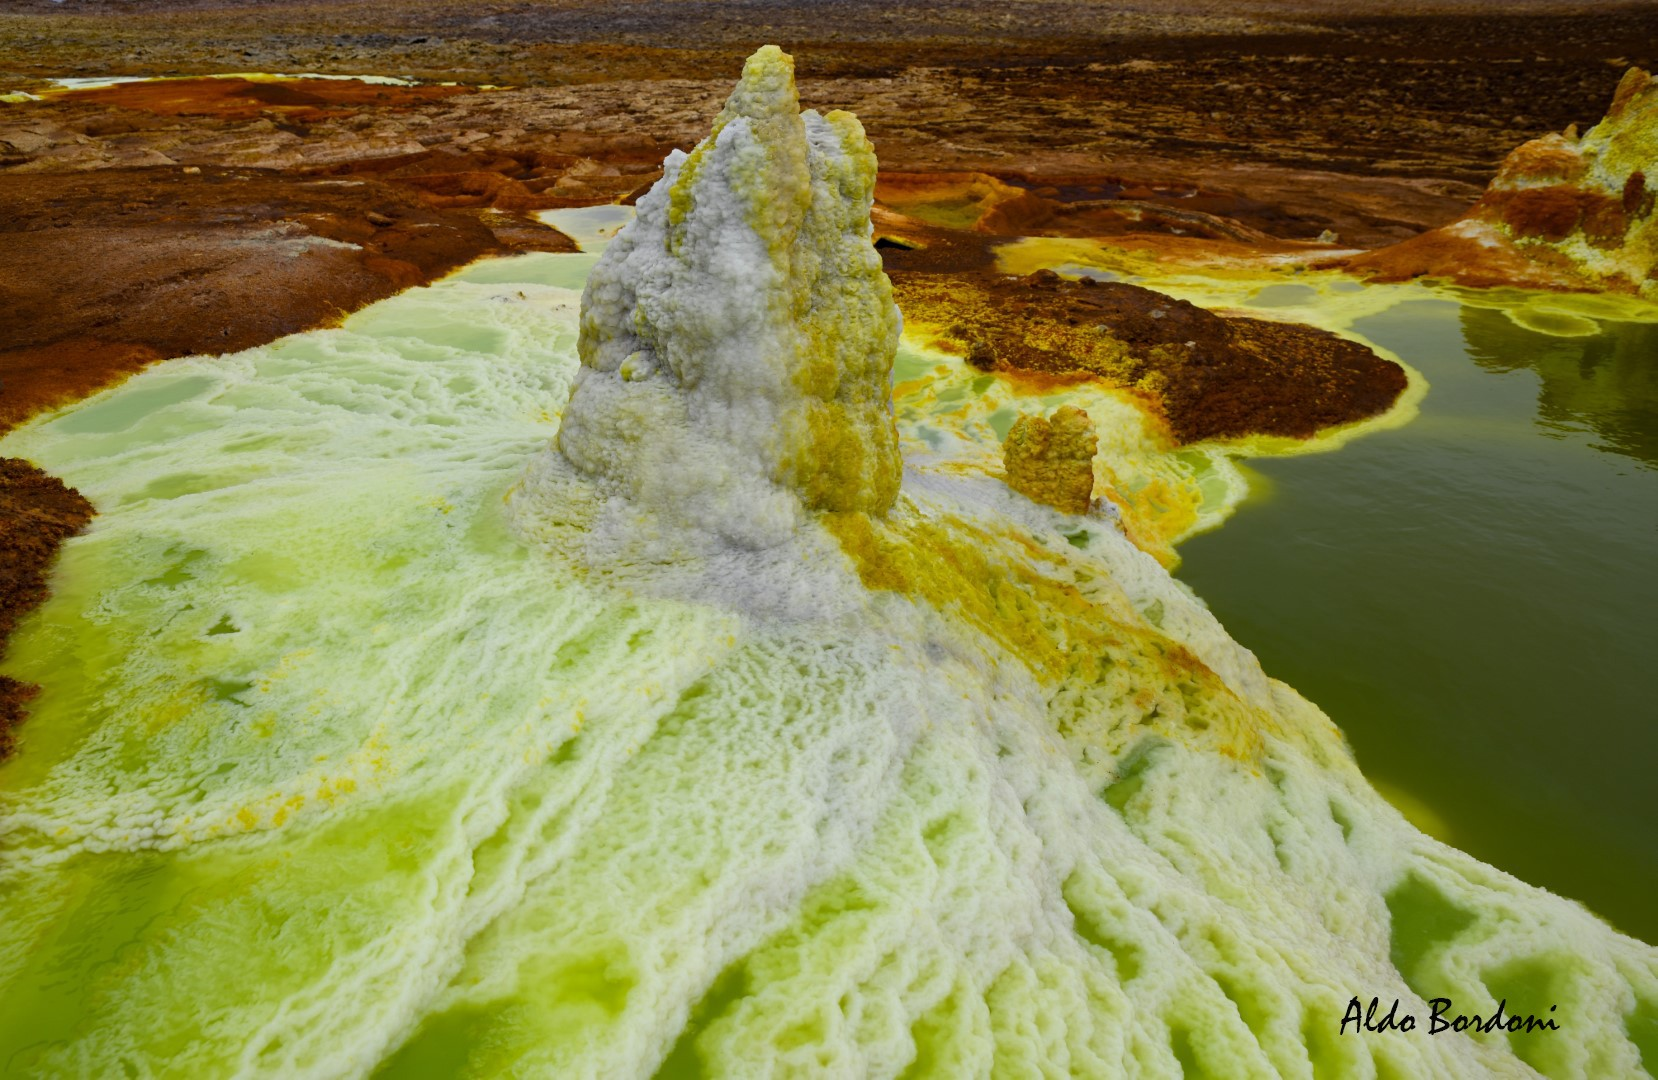 Dallol di Aldo Bordoni